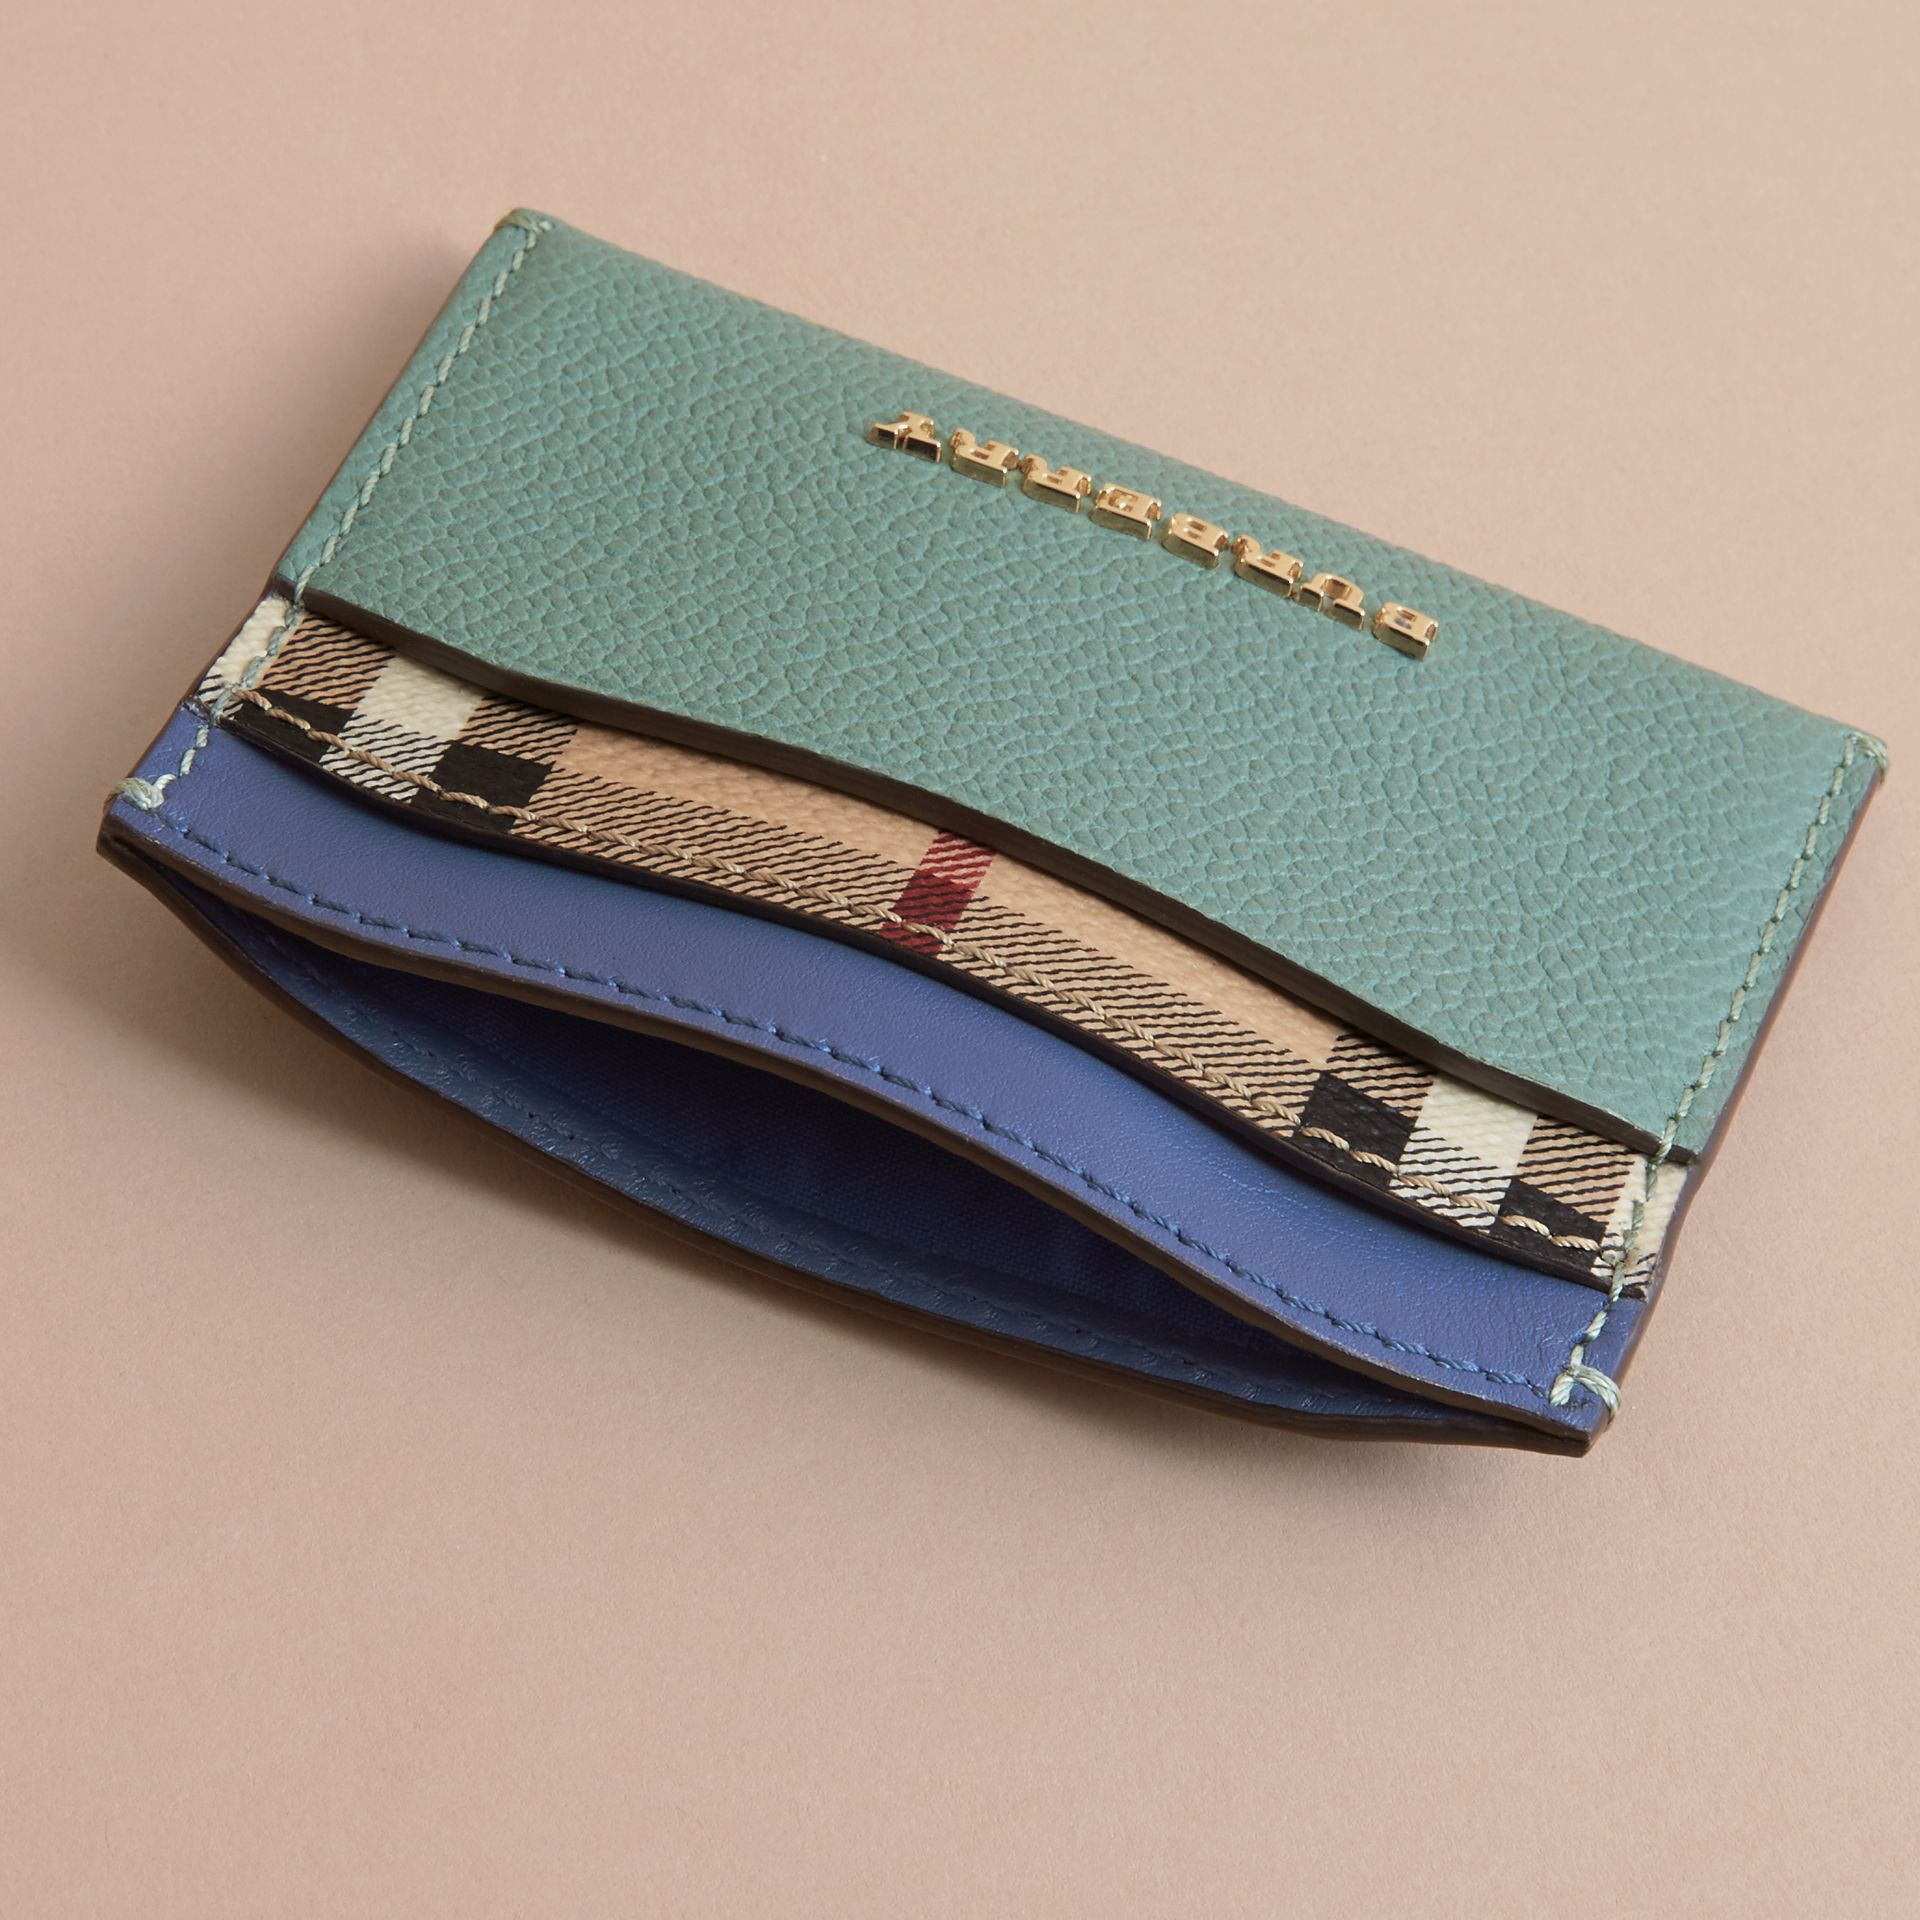 Colour Block Leather and Haymarket Check Card Case in Eucalyptus Grn/multi - Women | Burberry - gallery image 4